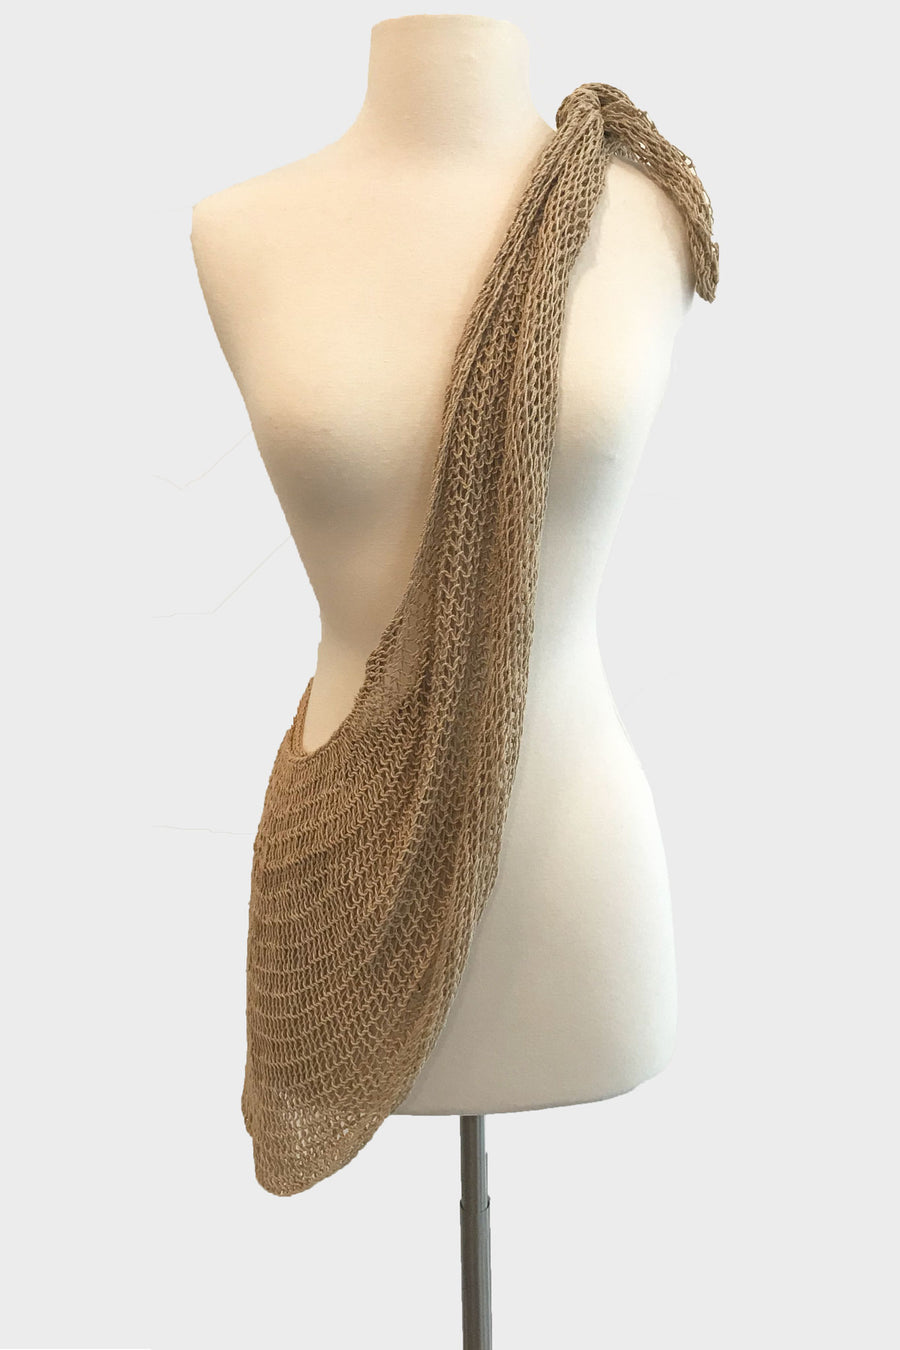 This is a photo of a natural-colored bag draped across the mannequin, tied on one shoulder and resting on the opposite hip.